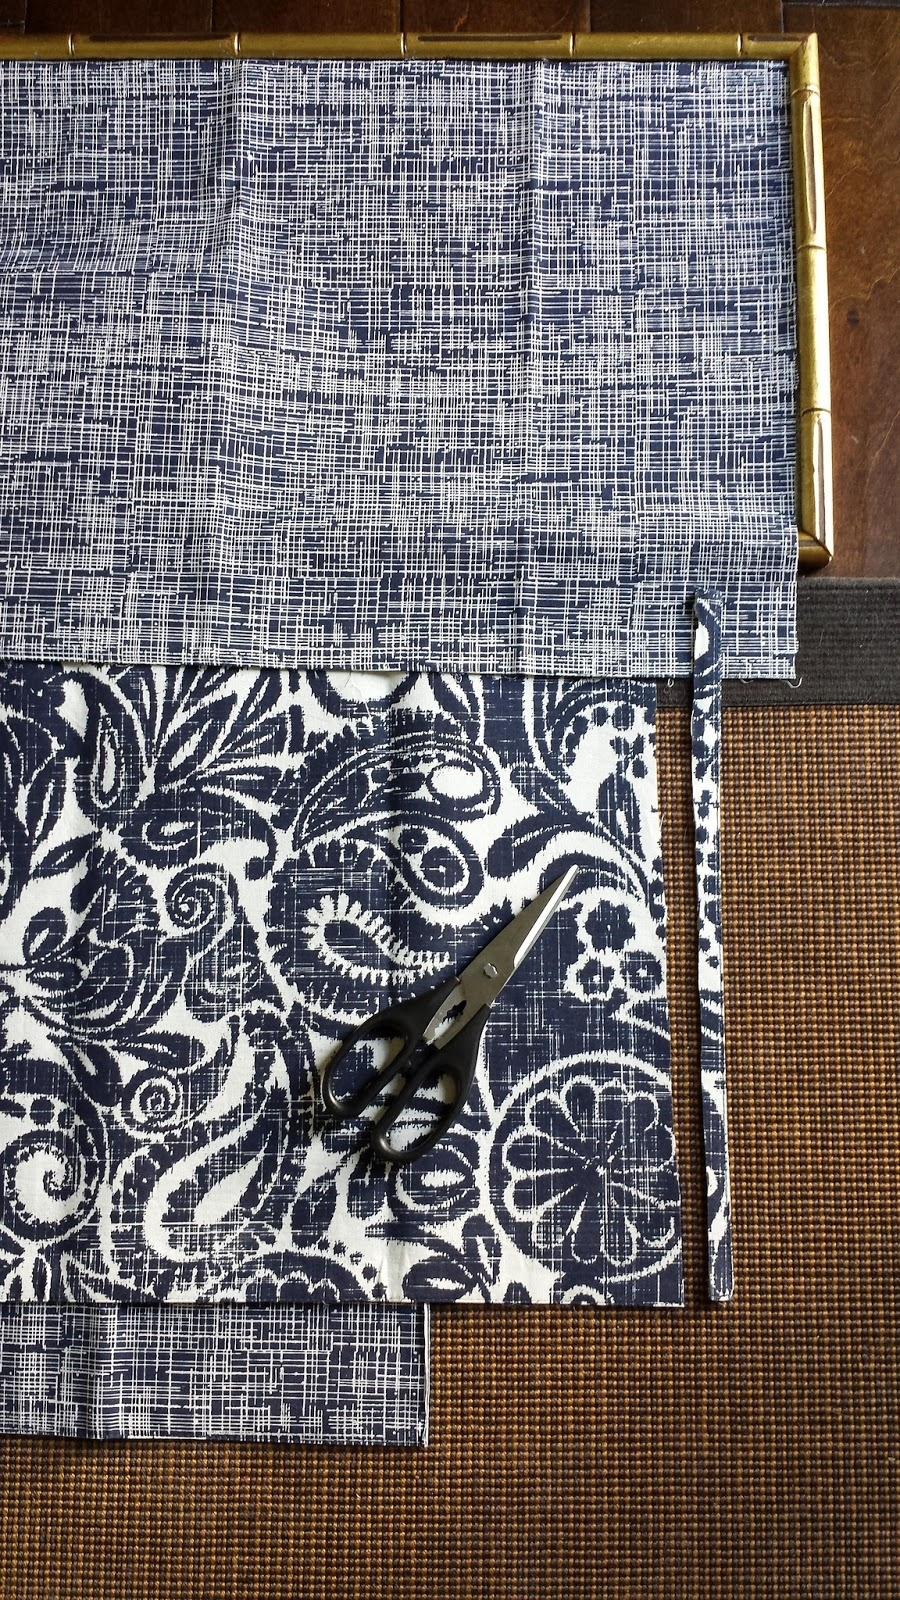 Focal Point Styling: Diy Indigo Wall Art With Framed Fabric Regarding 2017 Diy Framed Fabric Wall Art (View 8 of 15)